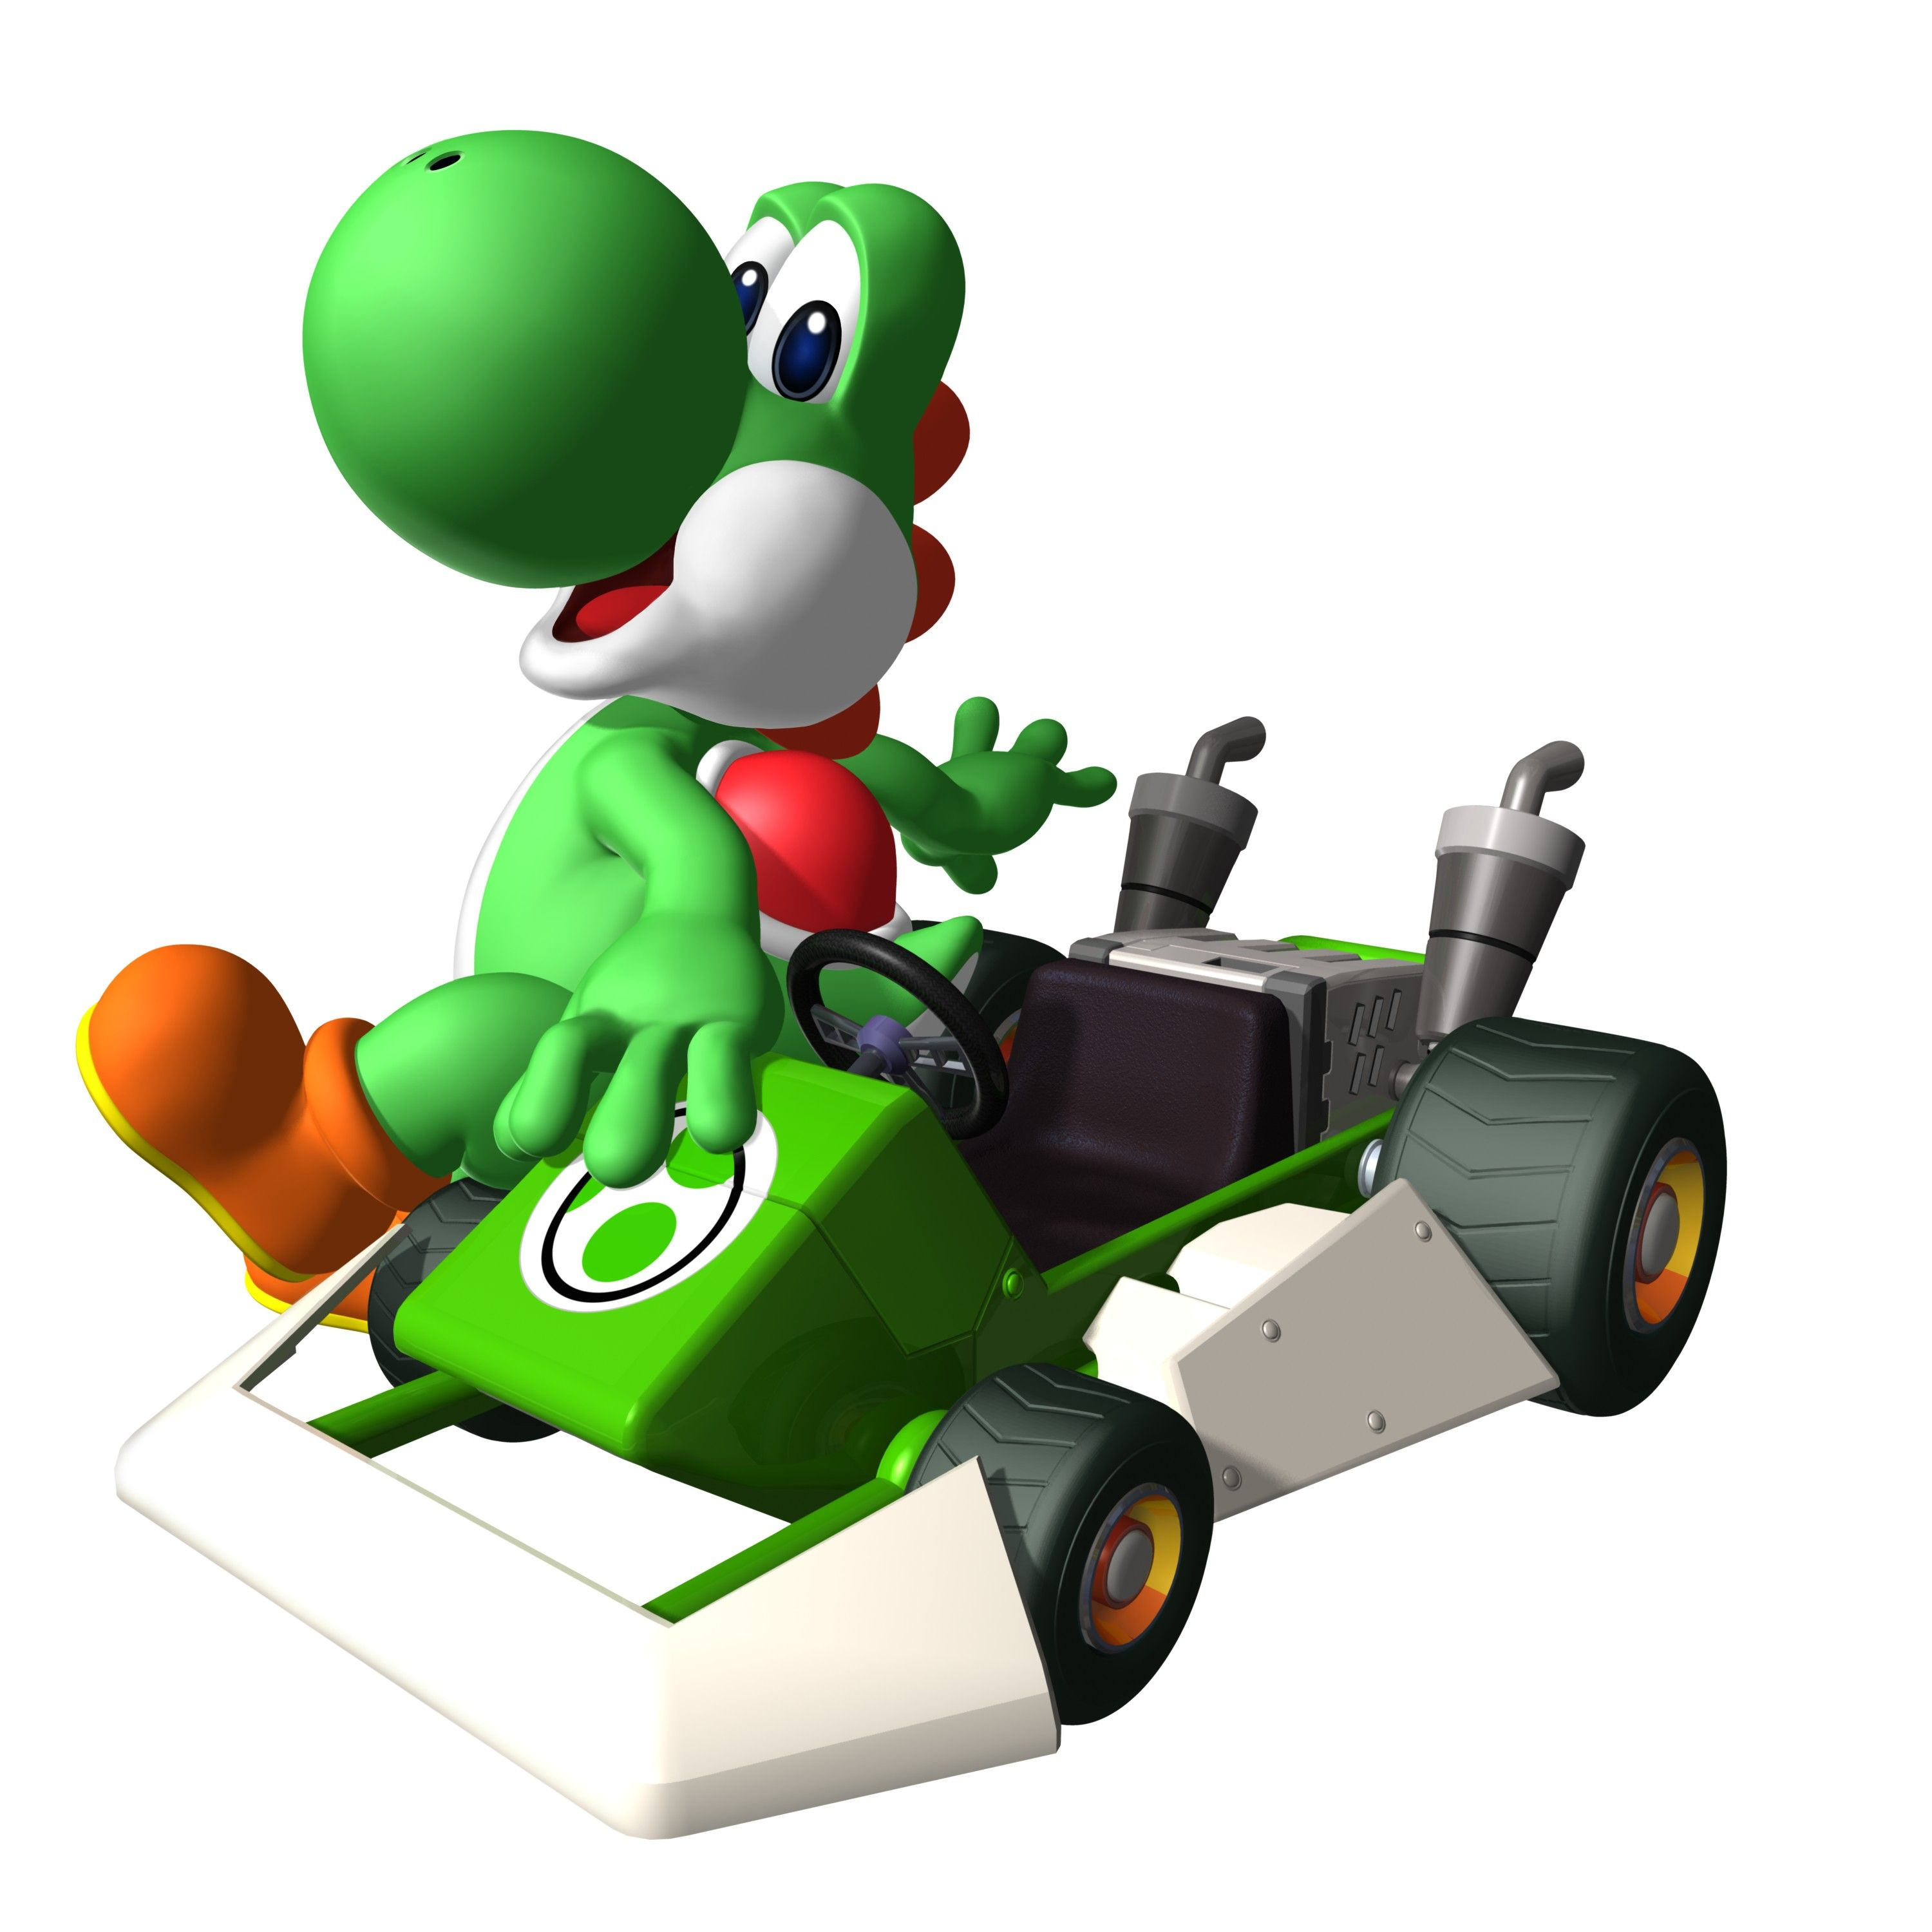 Donkey kong mario kart wii car tuning - Mario And Super Mario Plush Toys Yoshi This Is A Plush From The Popular And